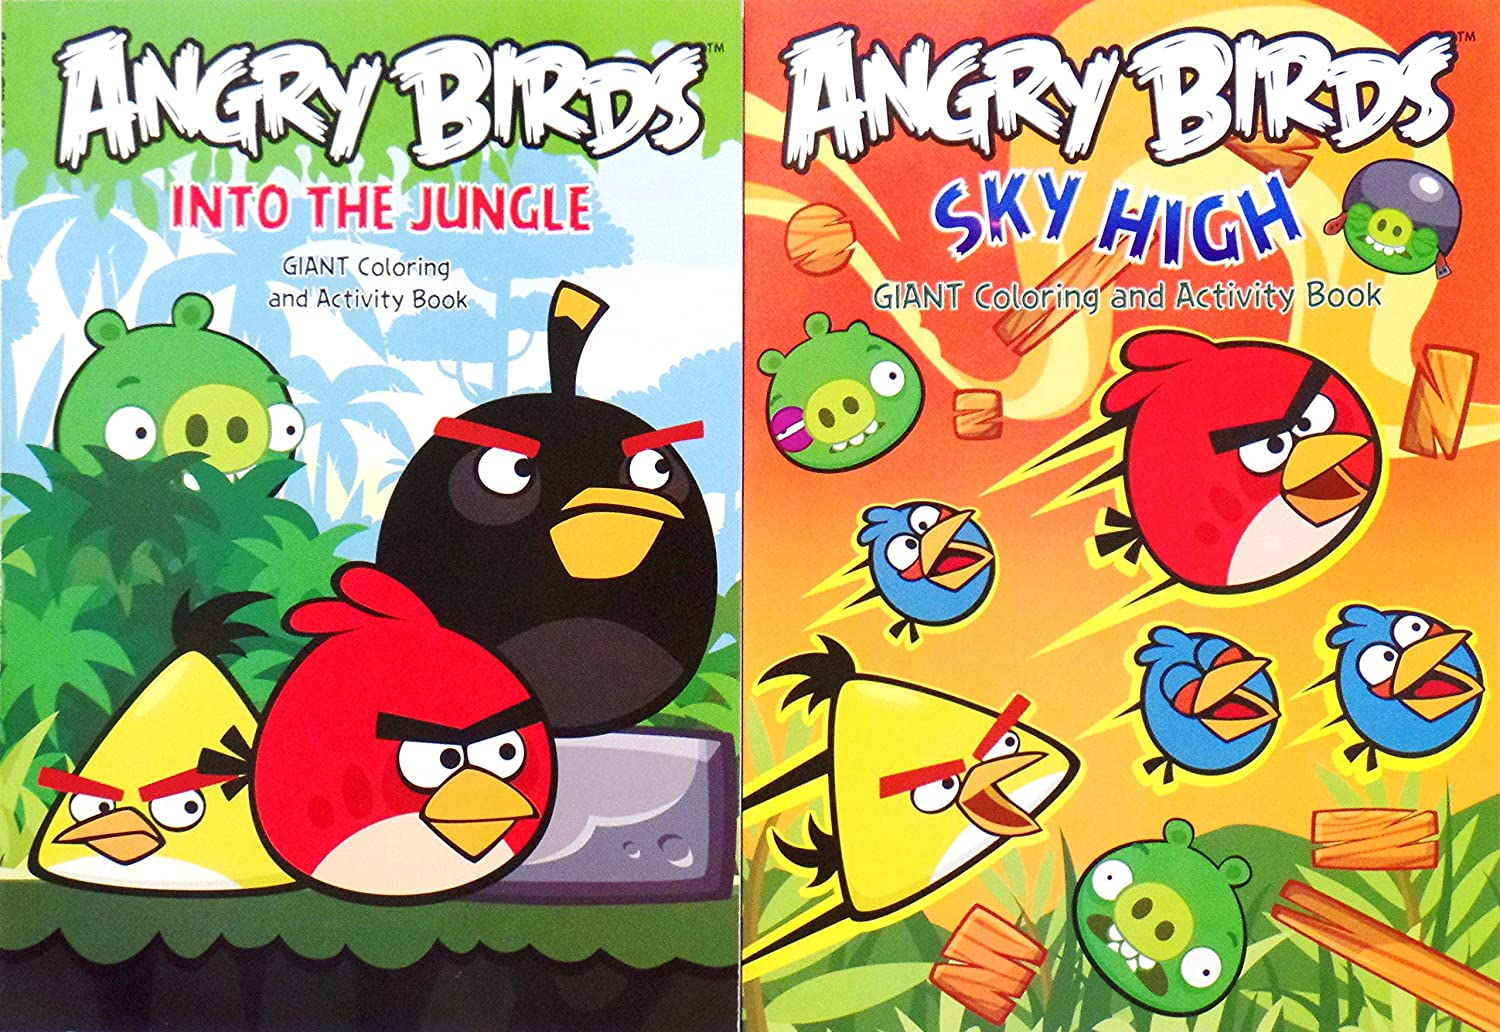 - Amazon.com: Angry Birds Giant Coloring And Activity Books - Into